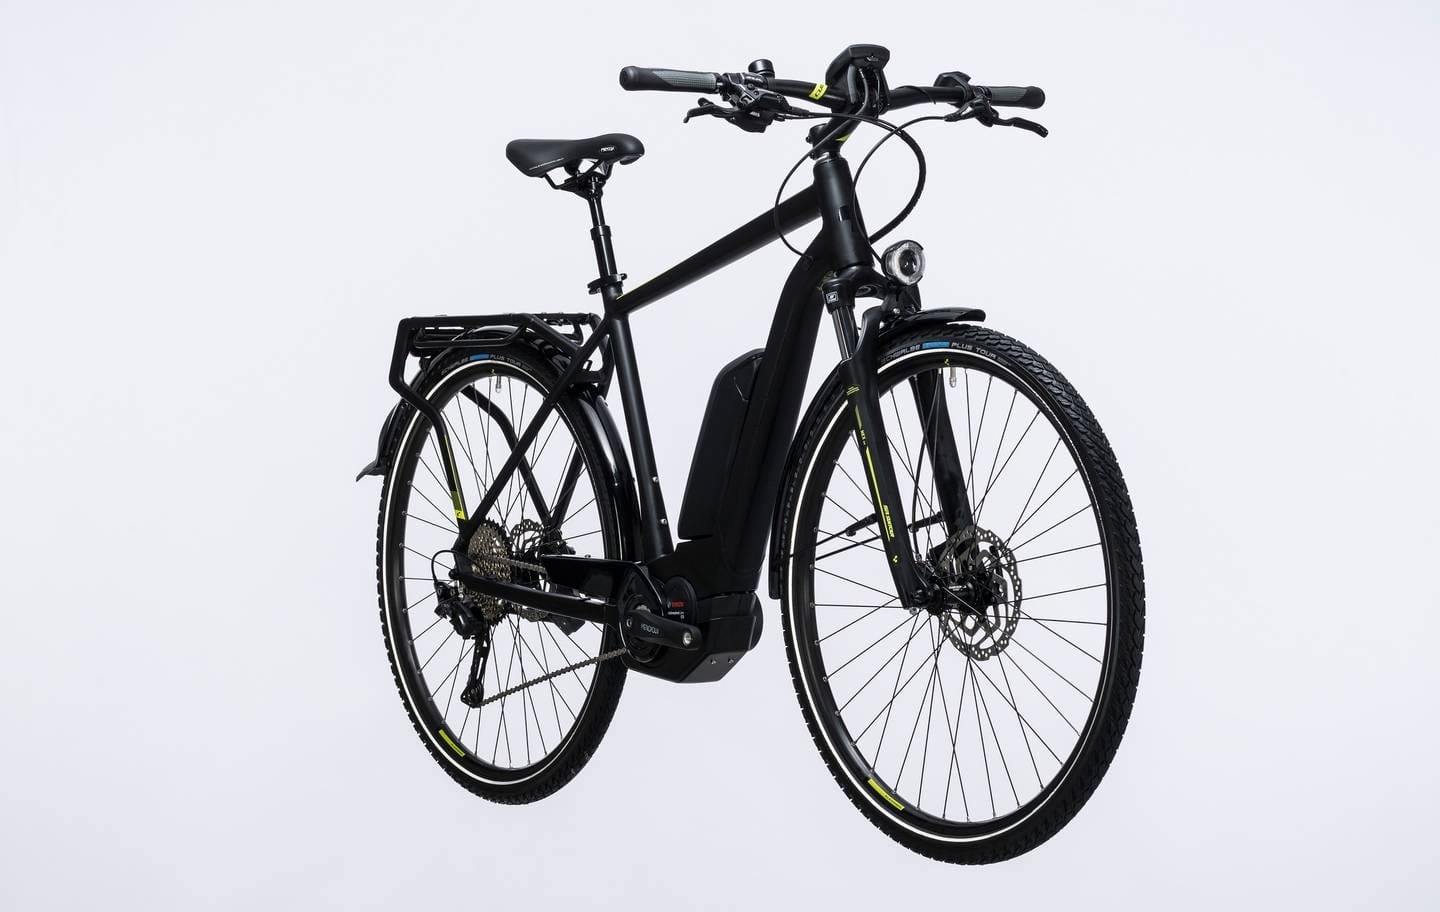 cube touring hybrid exc 500 e bike 2017 all terrain cycles. Black Bedroom Furniture Sets. Home Design Ideas